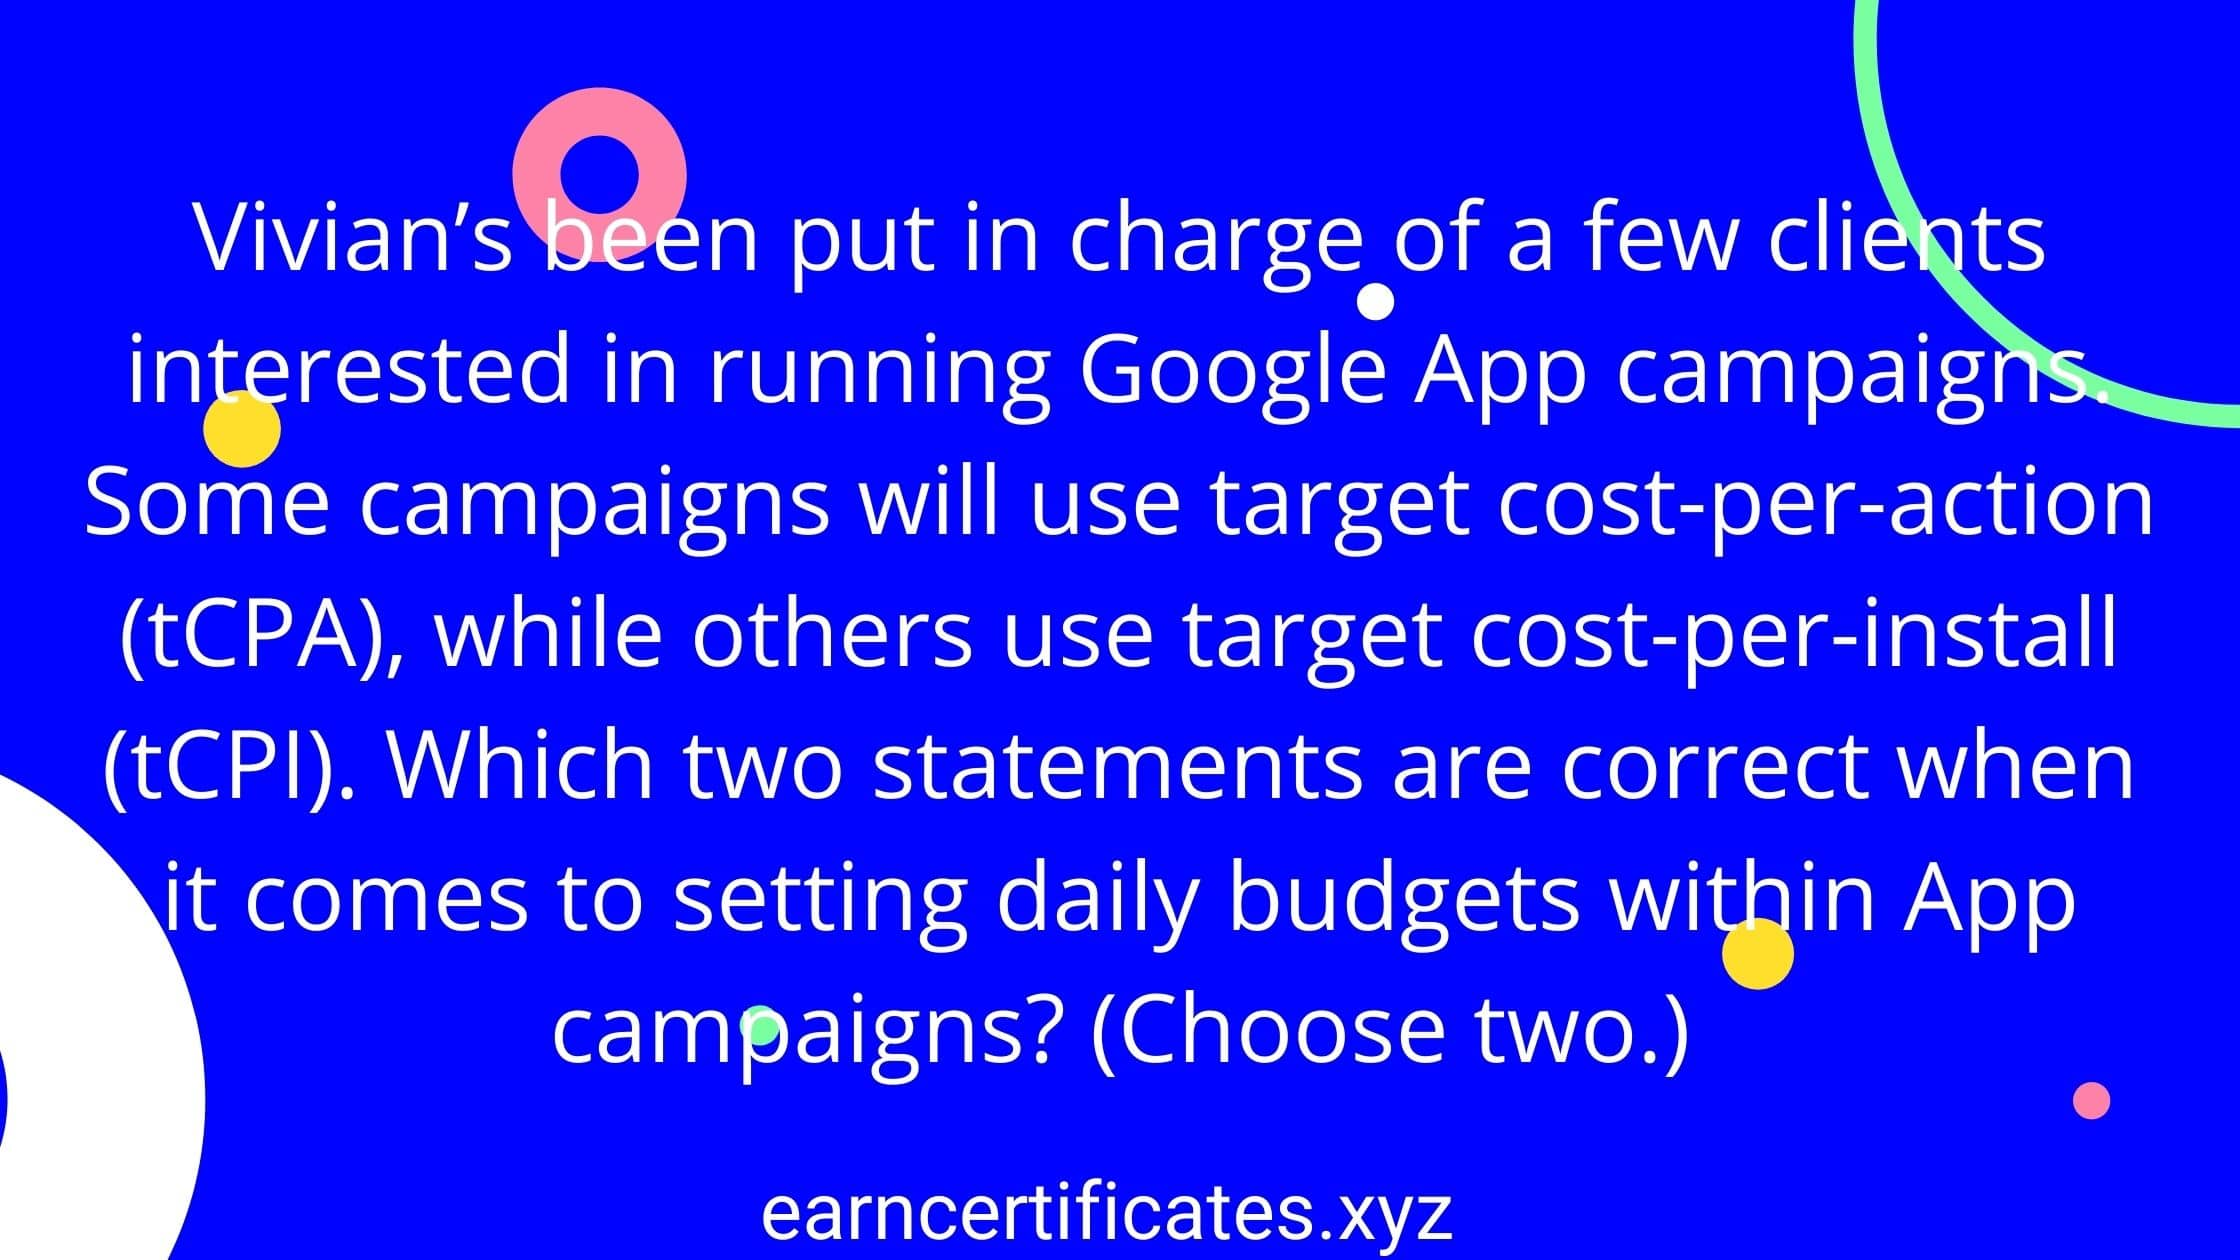 Vivian's been put in charge of a few clients interested in running Google App campaigns. Some campaigns will use target cost-per-action (tCPA), while others use target cost-per-install (tCPI). Which two statements are correct when it comes to setting daily budgets within App campaigns? (Choose two.)